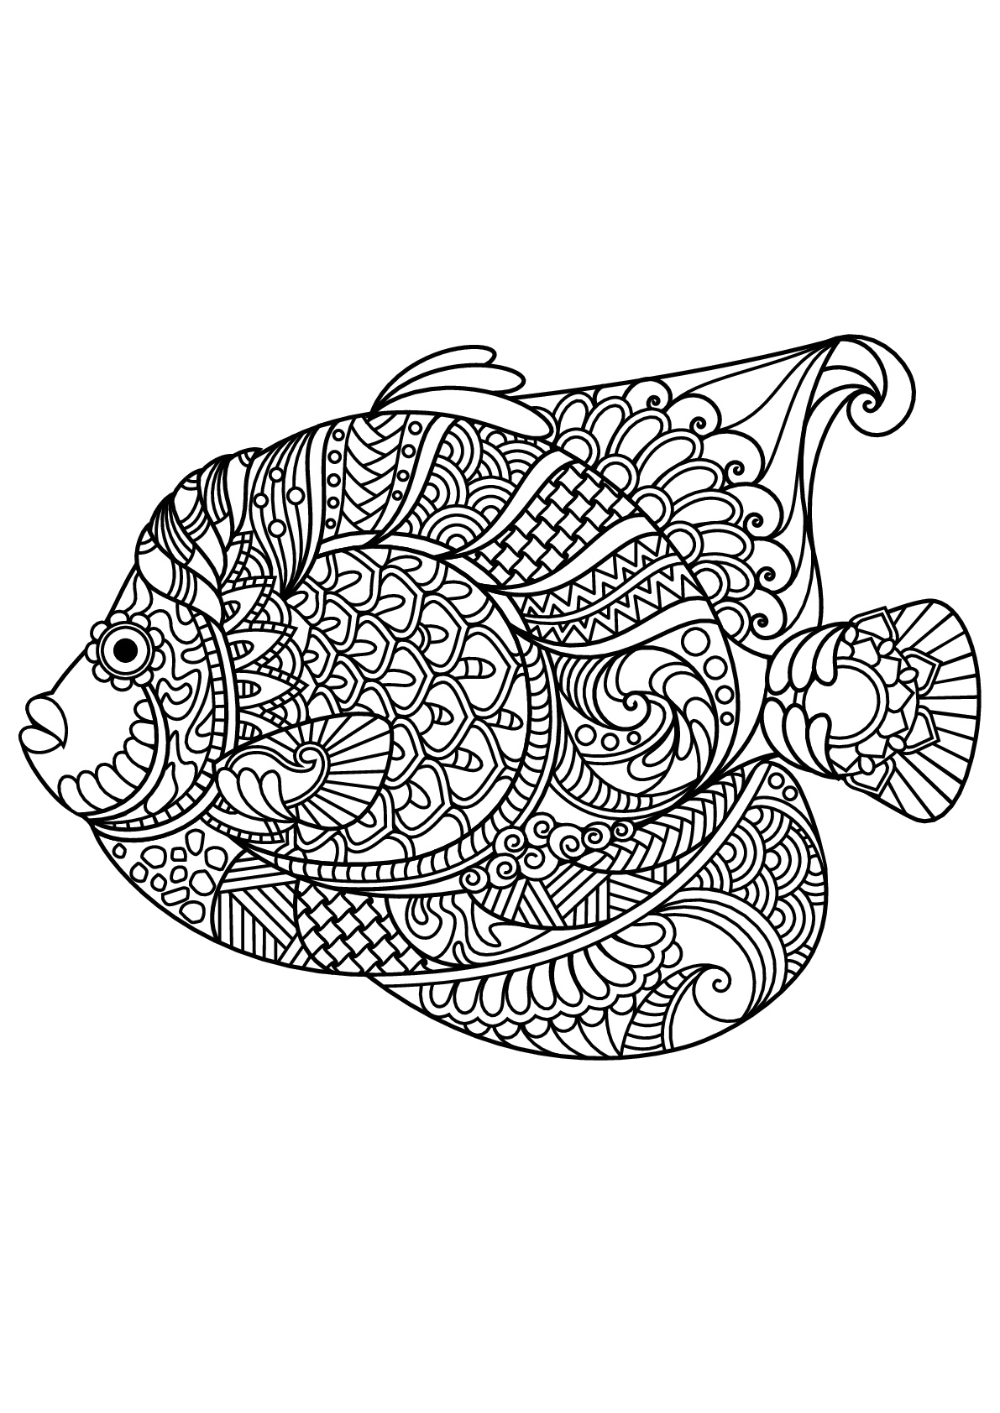 Simple Fish Fish Coloring Book Pages Coloring Books Coloring Pages Fish Drawings